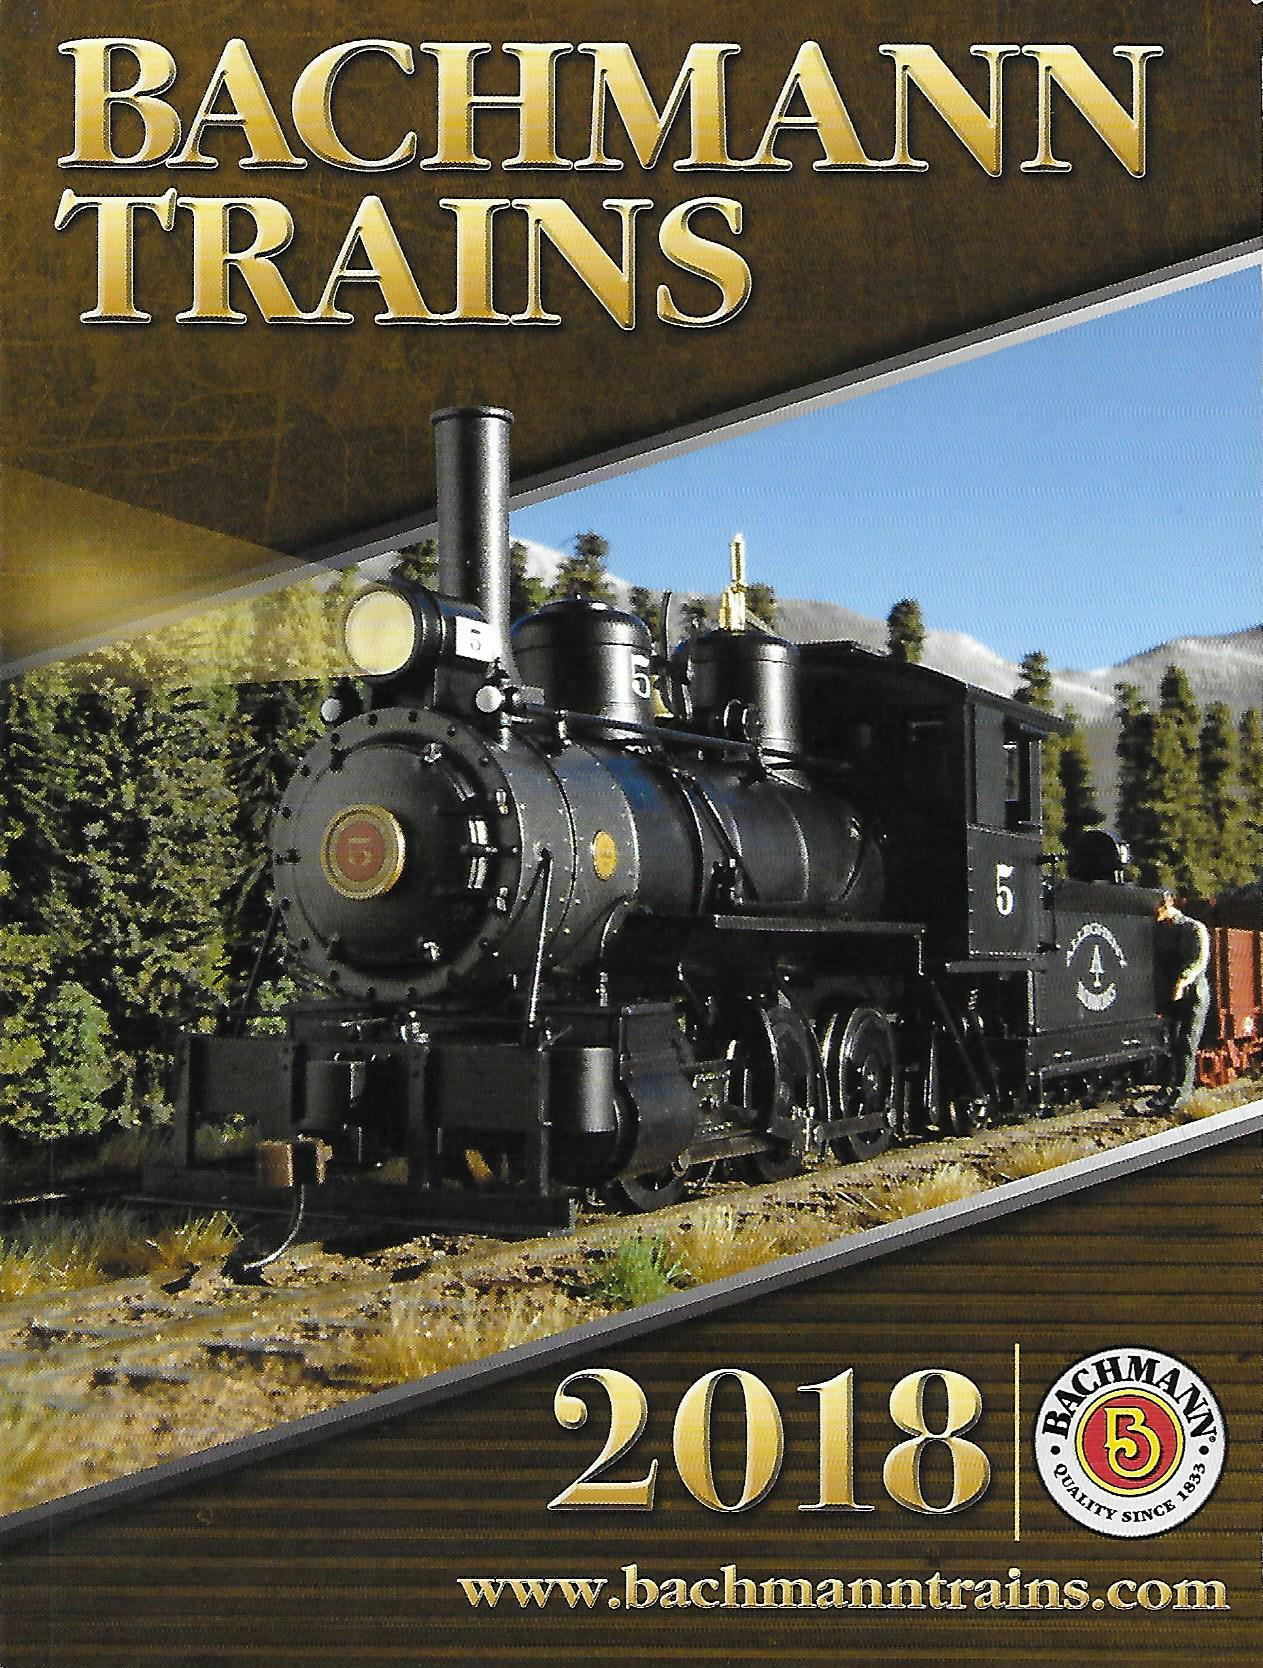 Williams by Bachmann 2018 Catalog image